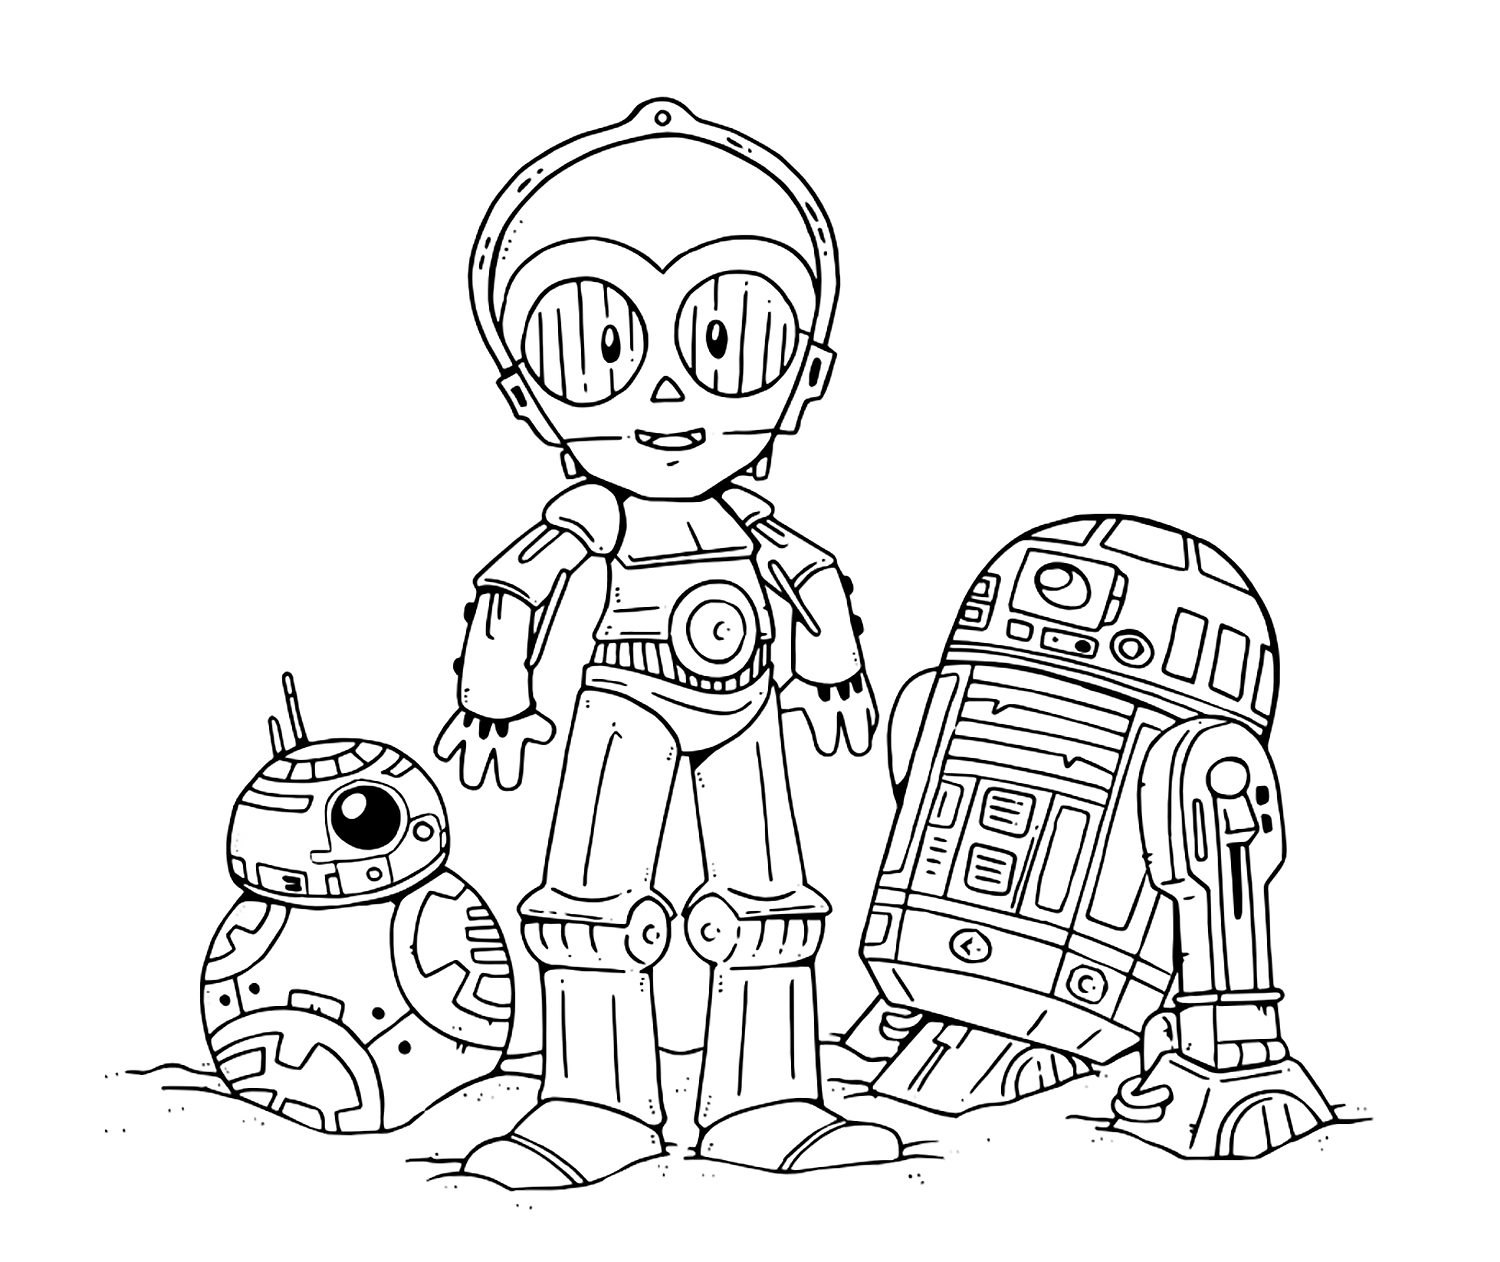 star wars coloring pages for kids star wars lightsaber coloring pages coloring home wars kids star for coloring pages